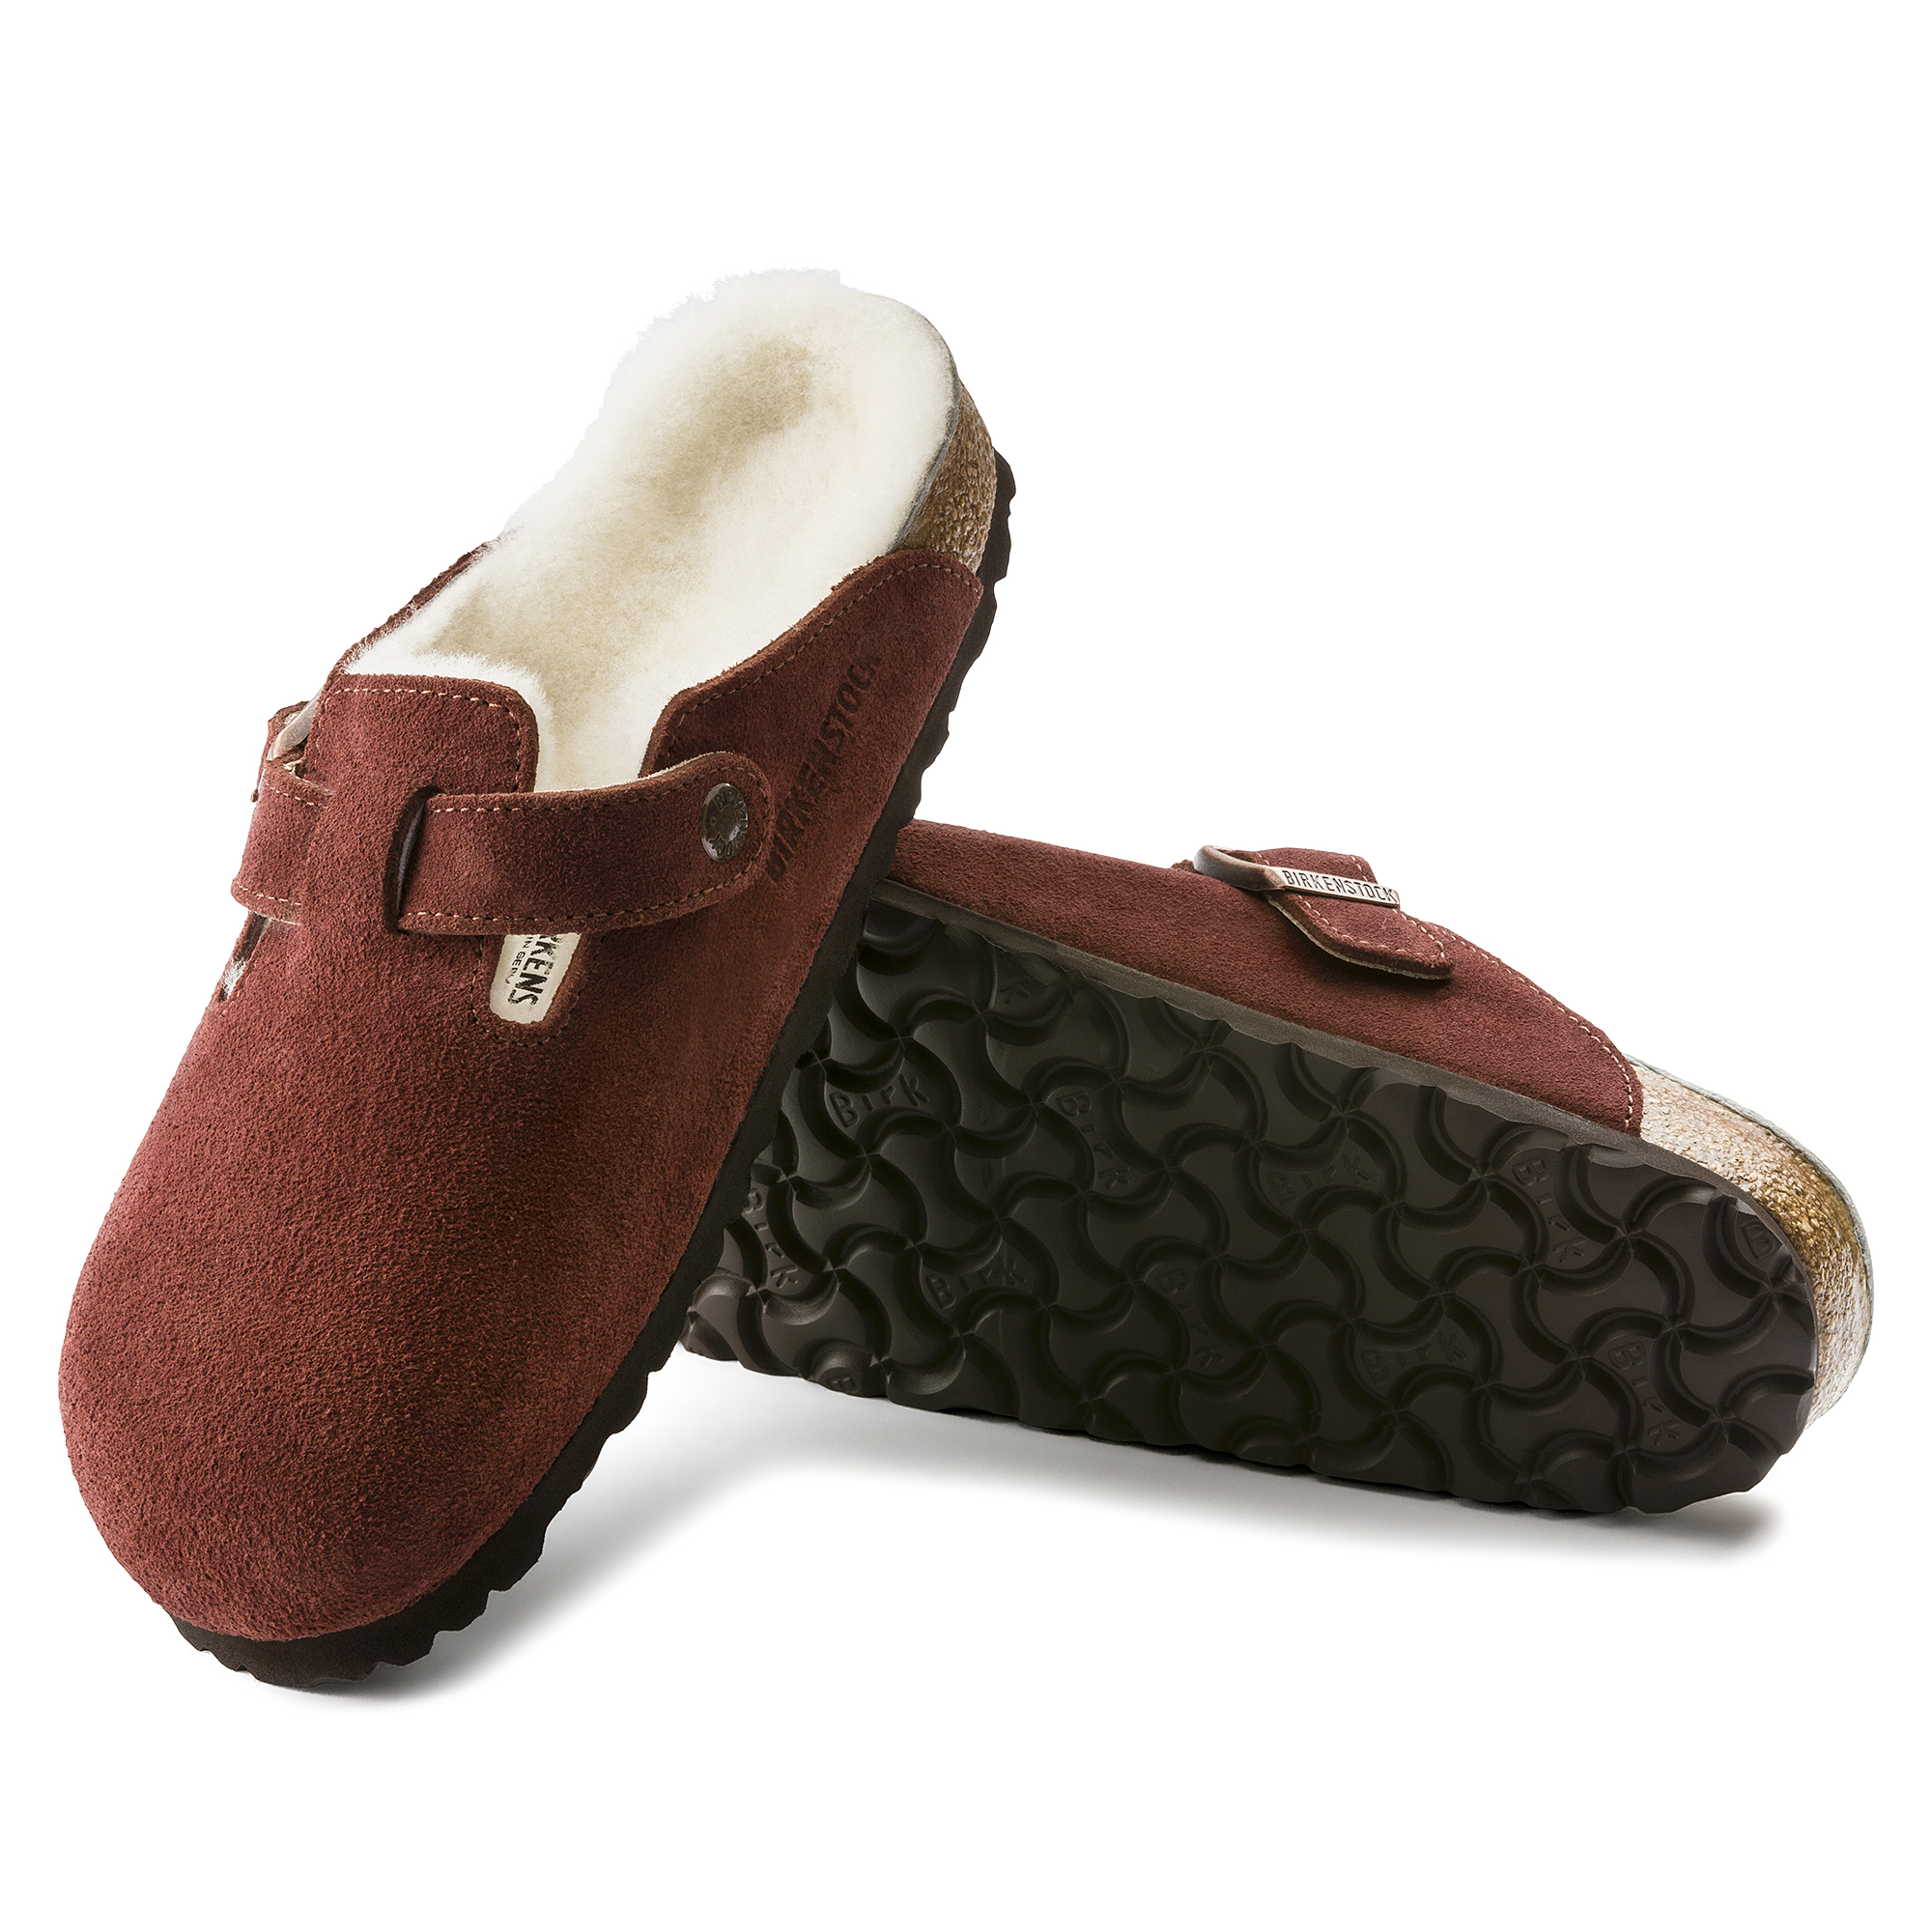 fe108e721 Boston Suede Leather | shop online at BIRKENSTOCK